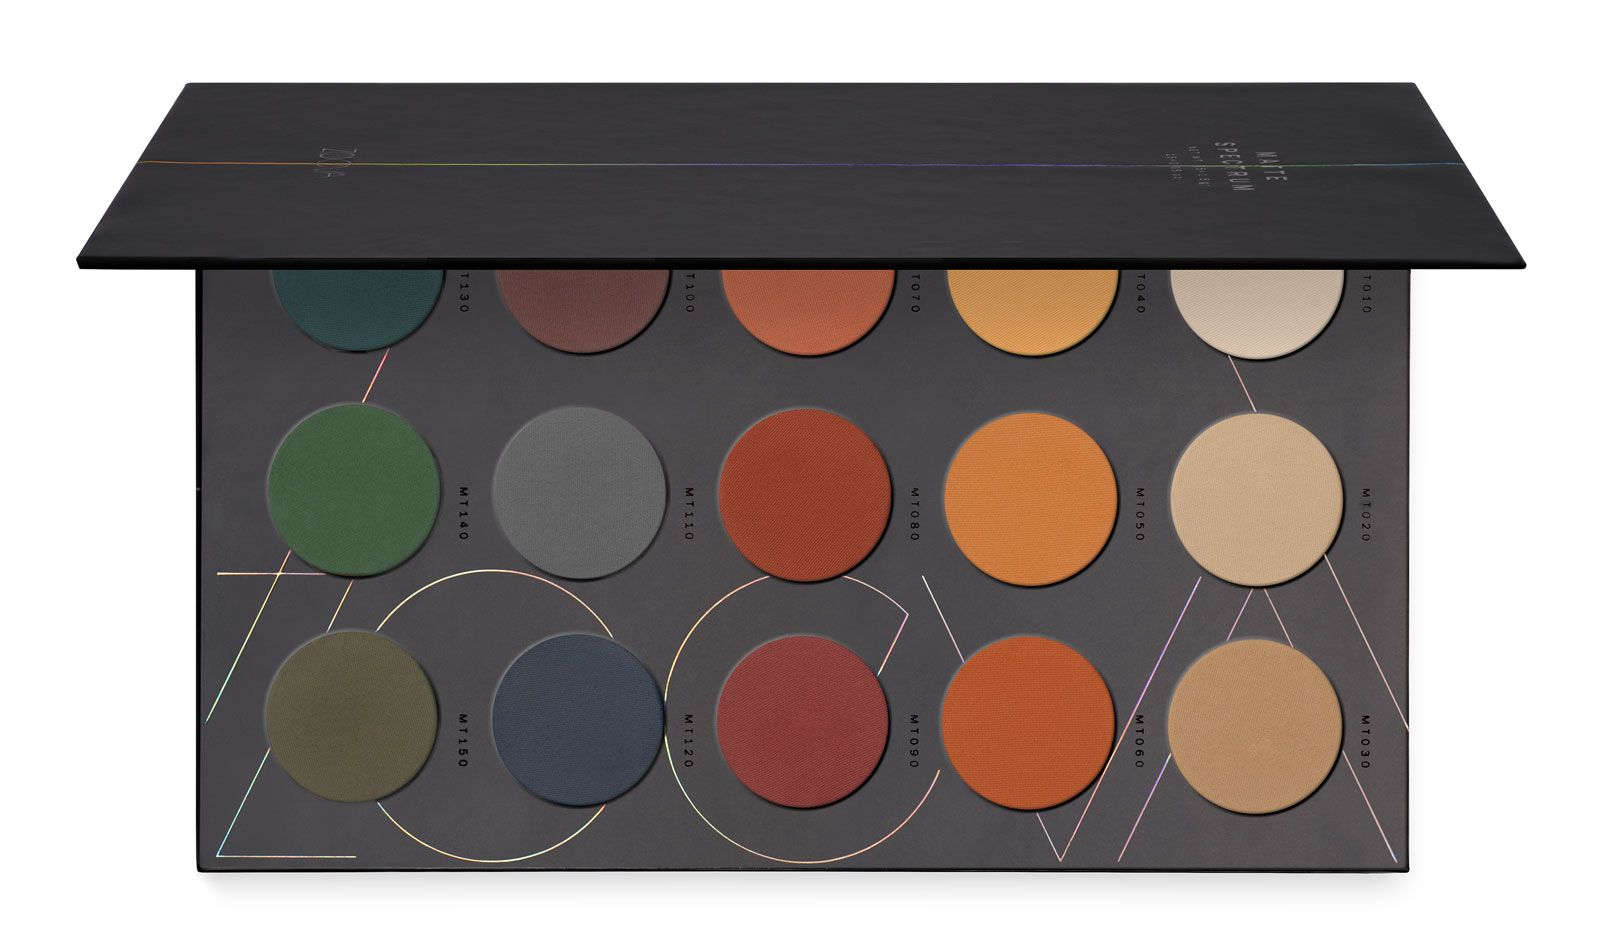 ZOEVA Eyeshadow Palette with 15 highly pigmented, colorful matte shades | All shades | Order online! #ZOEVA